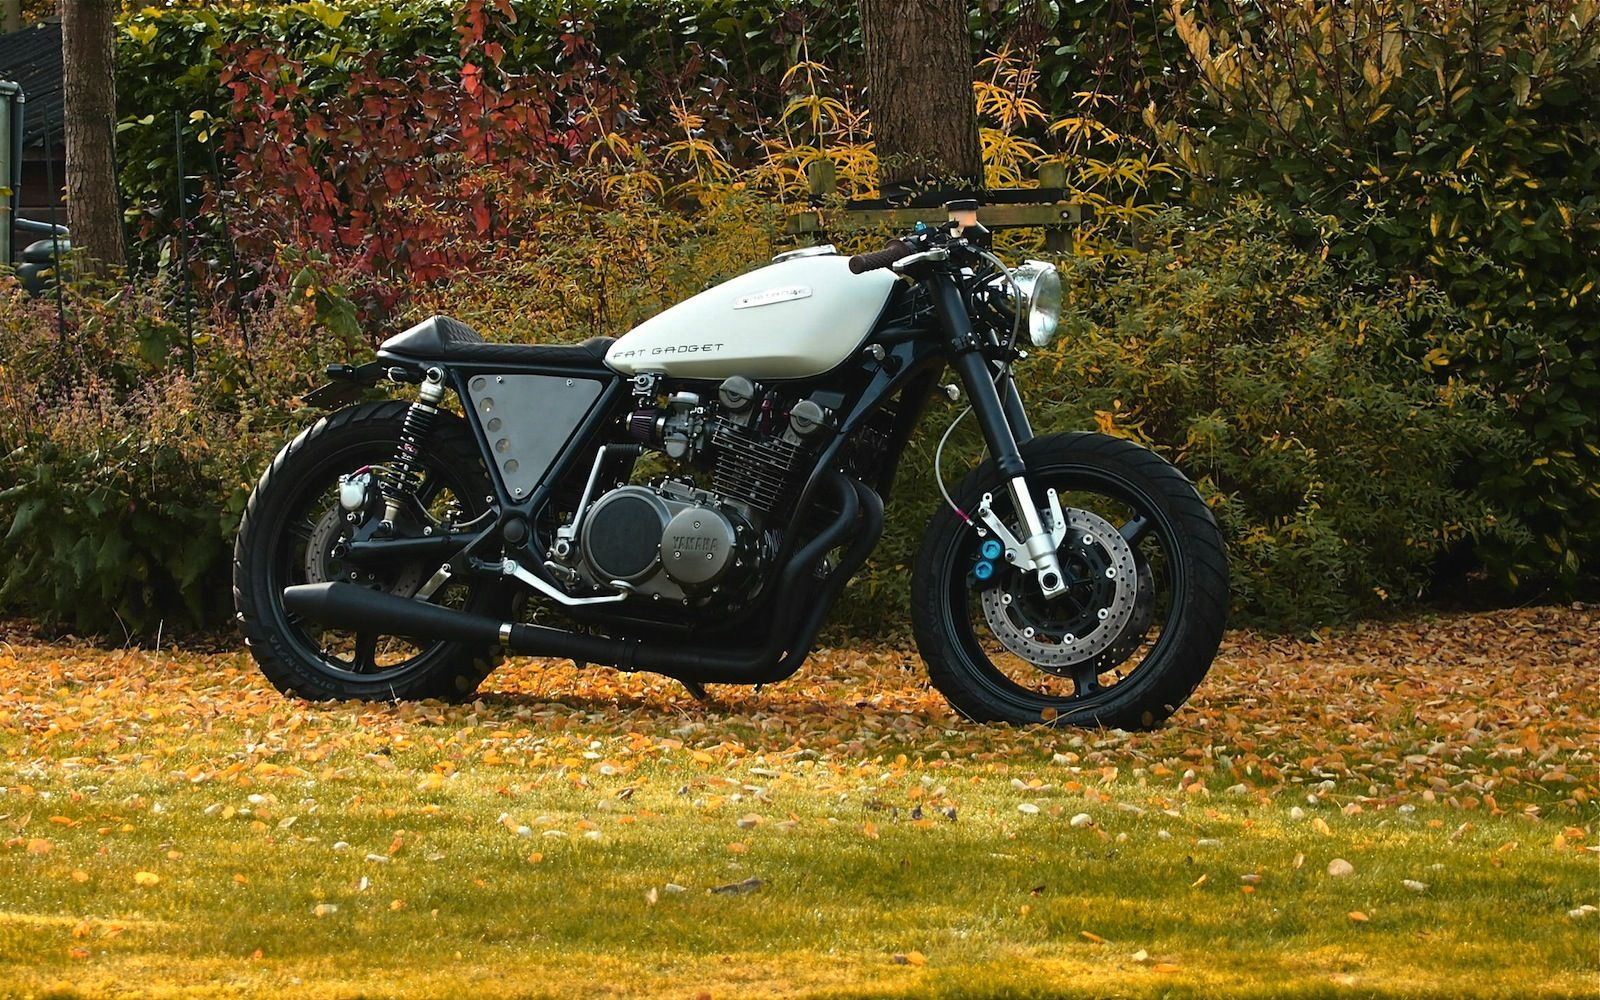 Pin On Ideas For1978 Yamaha Xs750 [ 1000 x 1600 Pixel ]